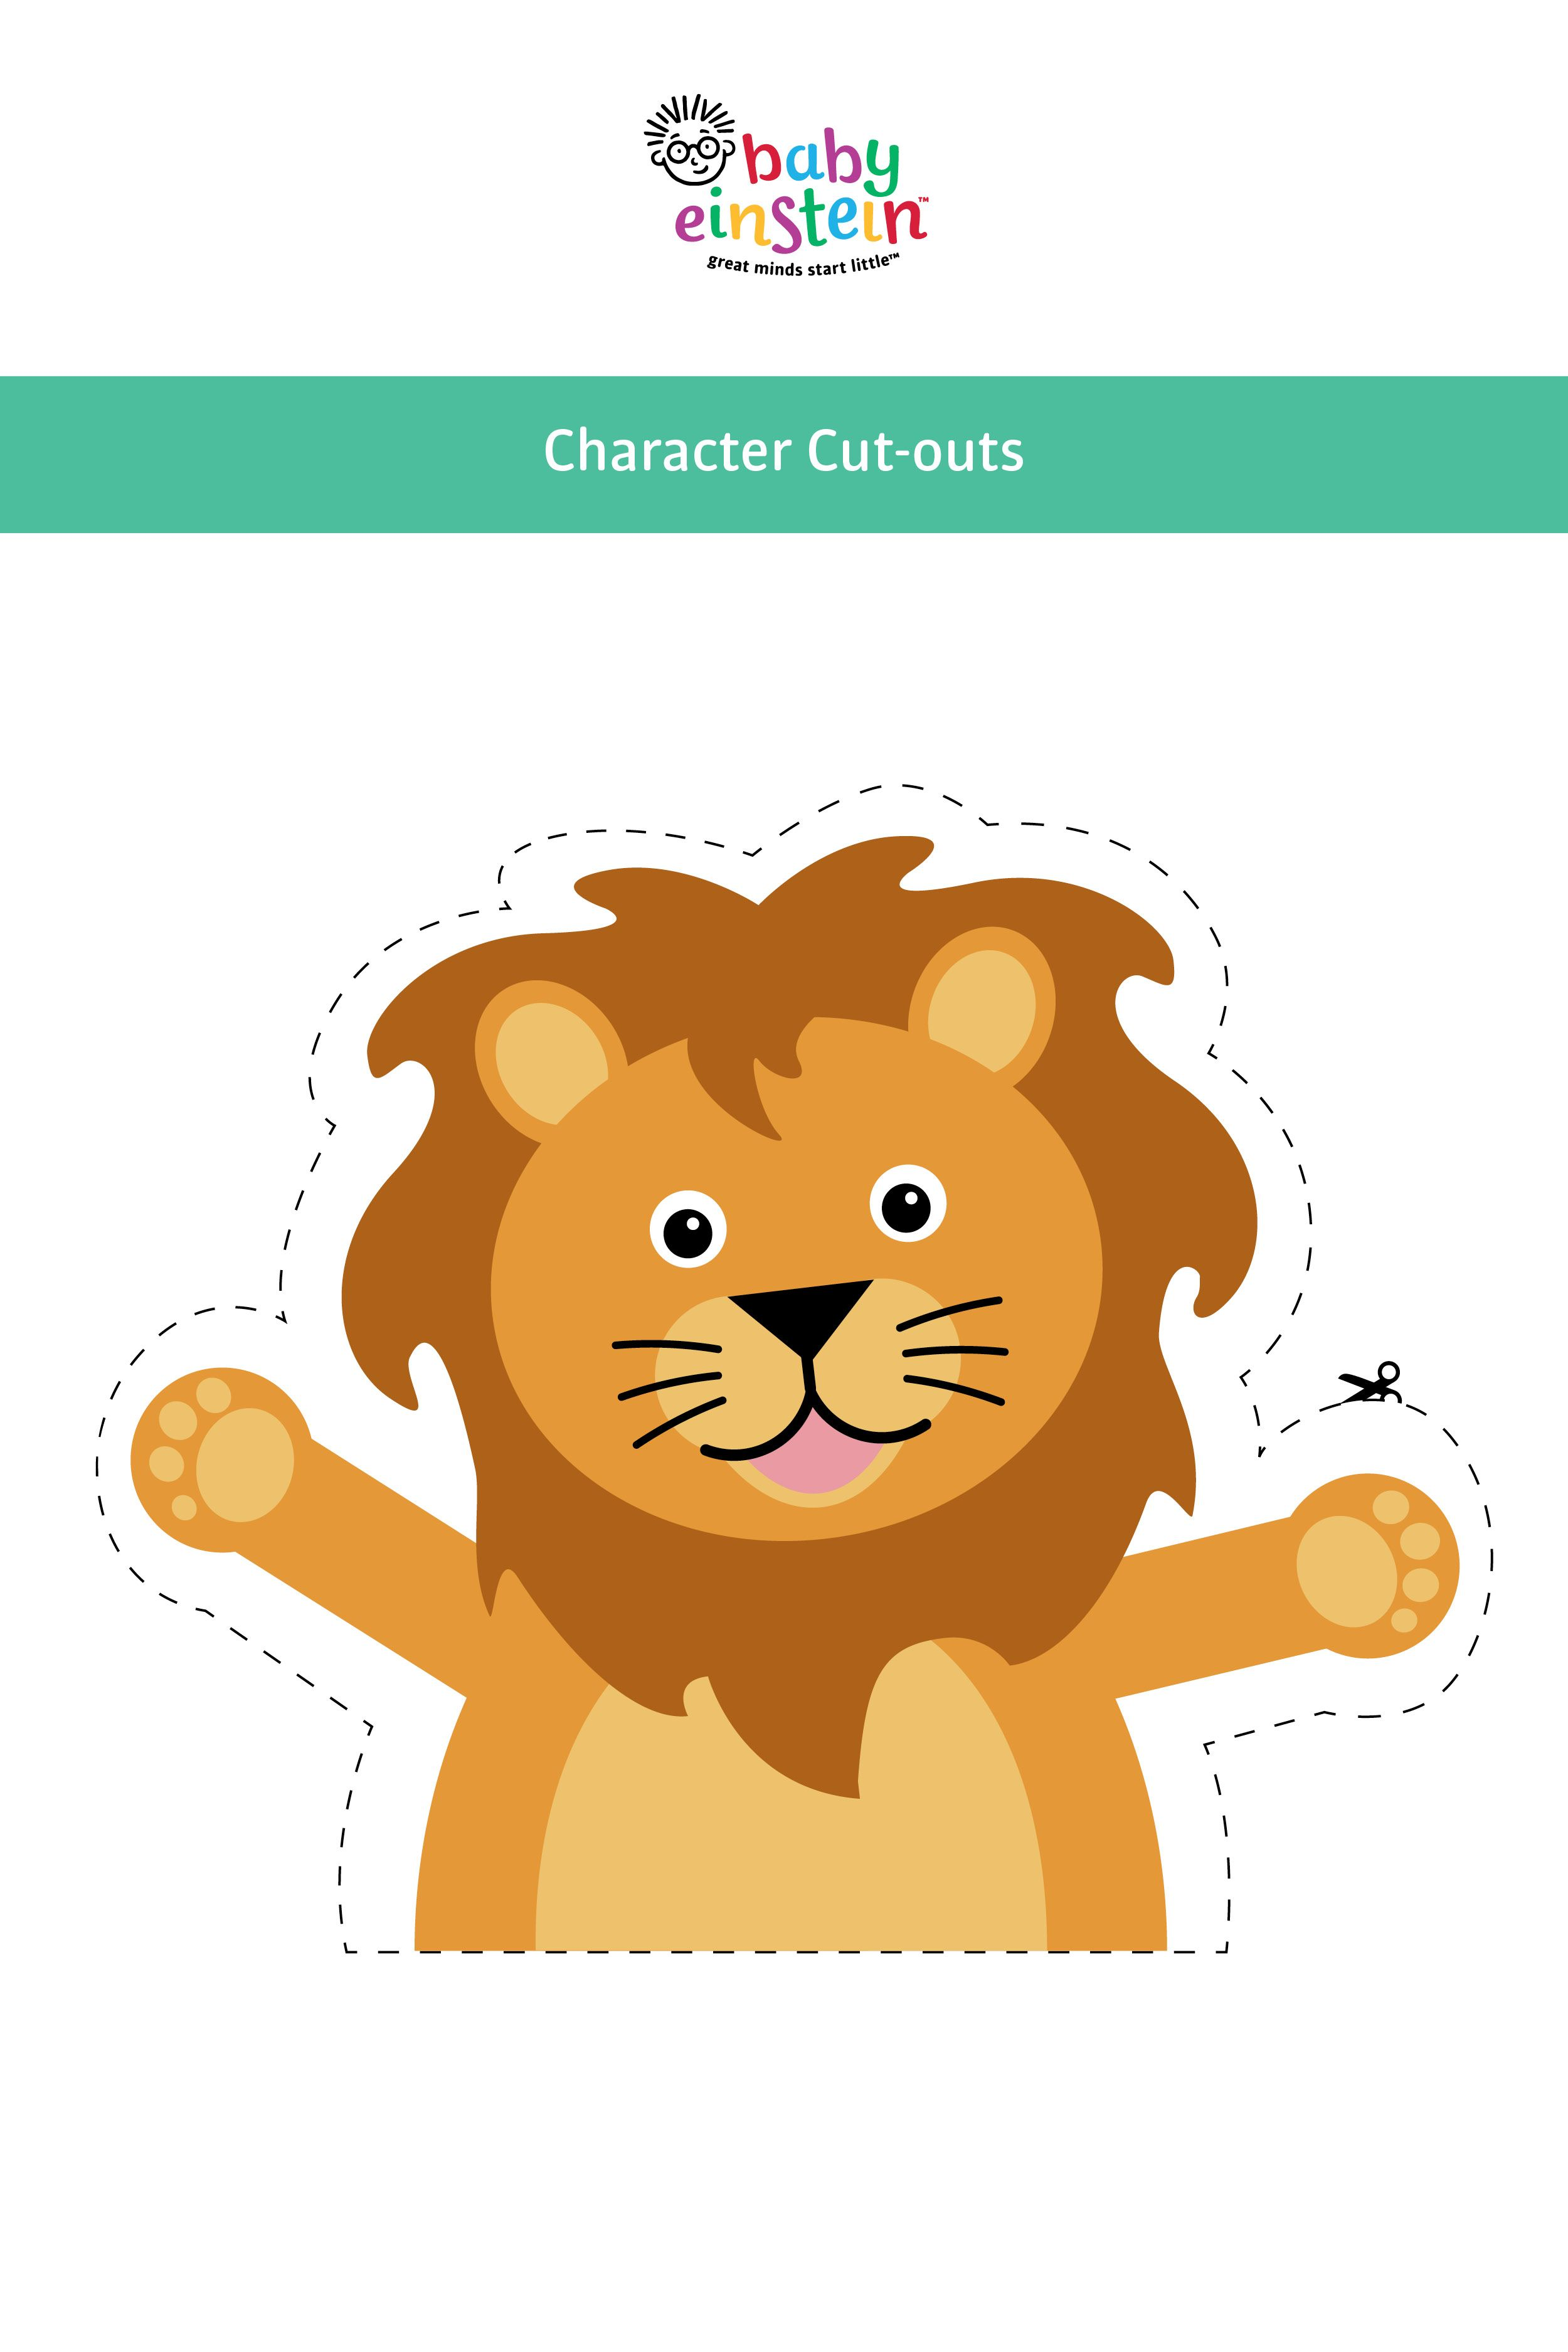 Get Your Baby Einstein Character Cut Outs Use Them To Make Adorable Themed Goobags For Your